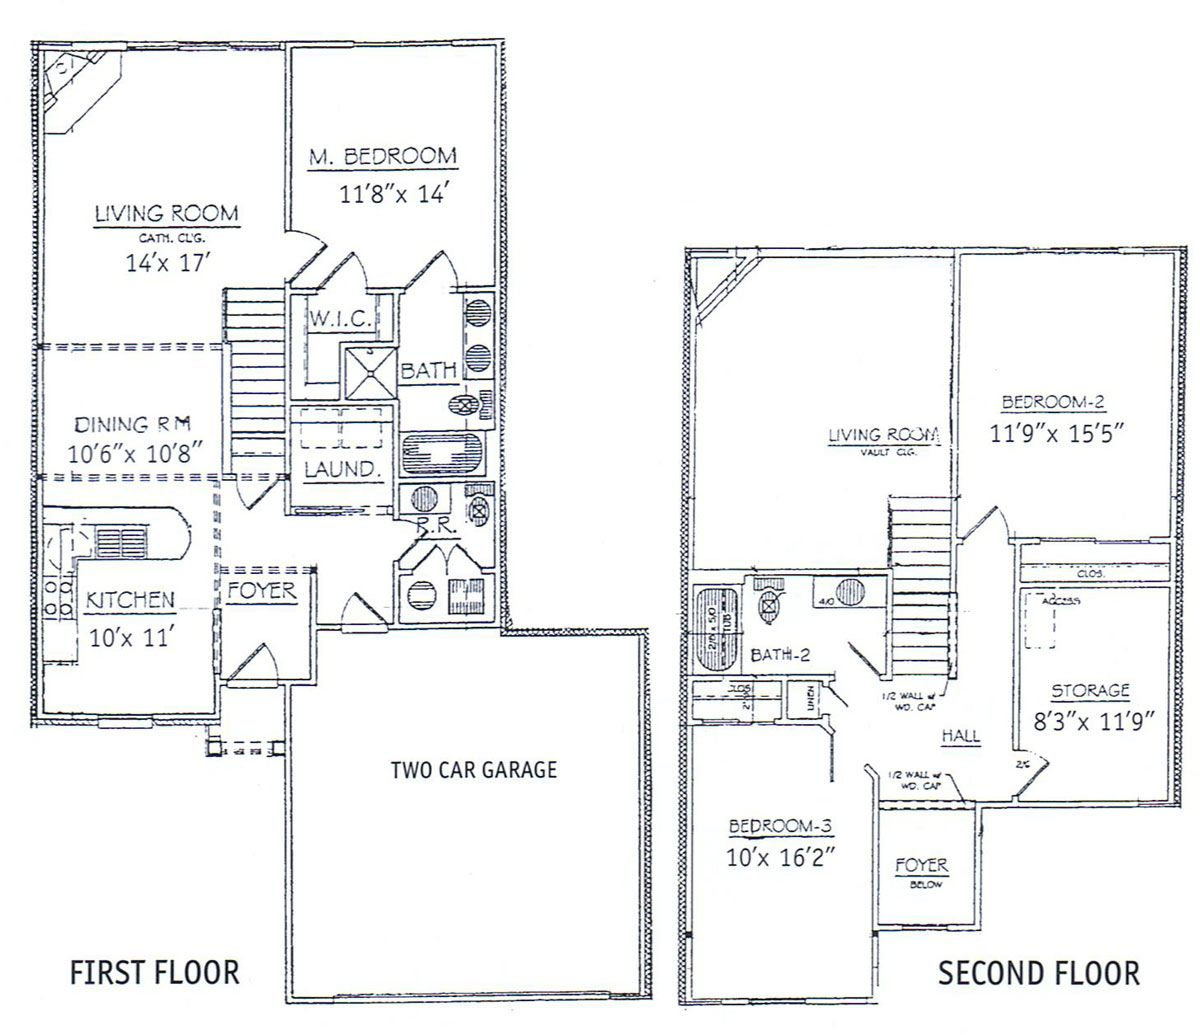 3 bedrooms floor plans 2 story bdrm basement the two for 2 story floor plans